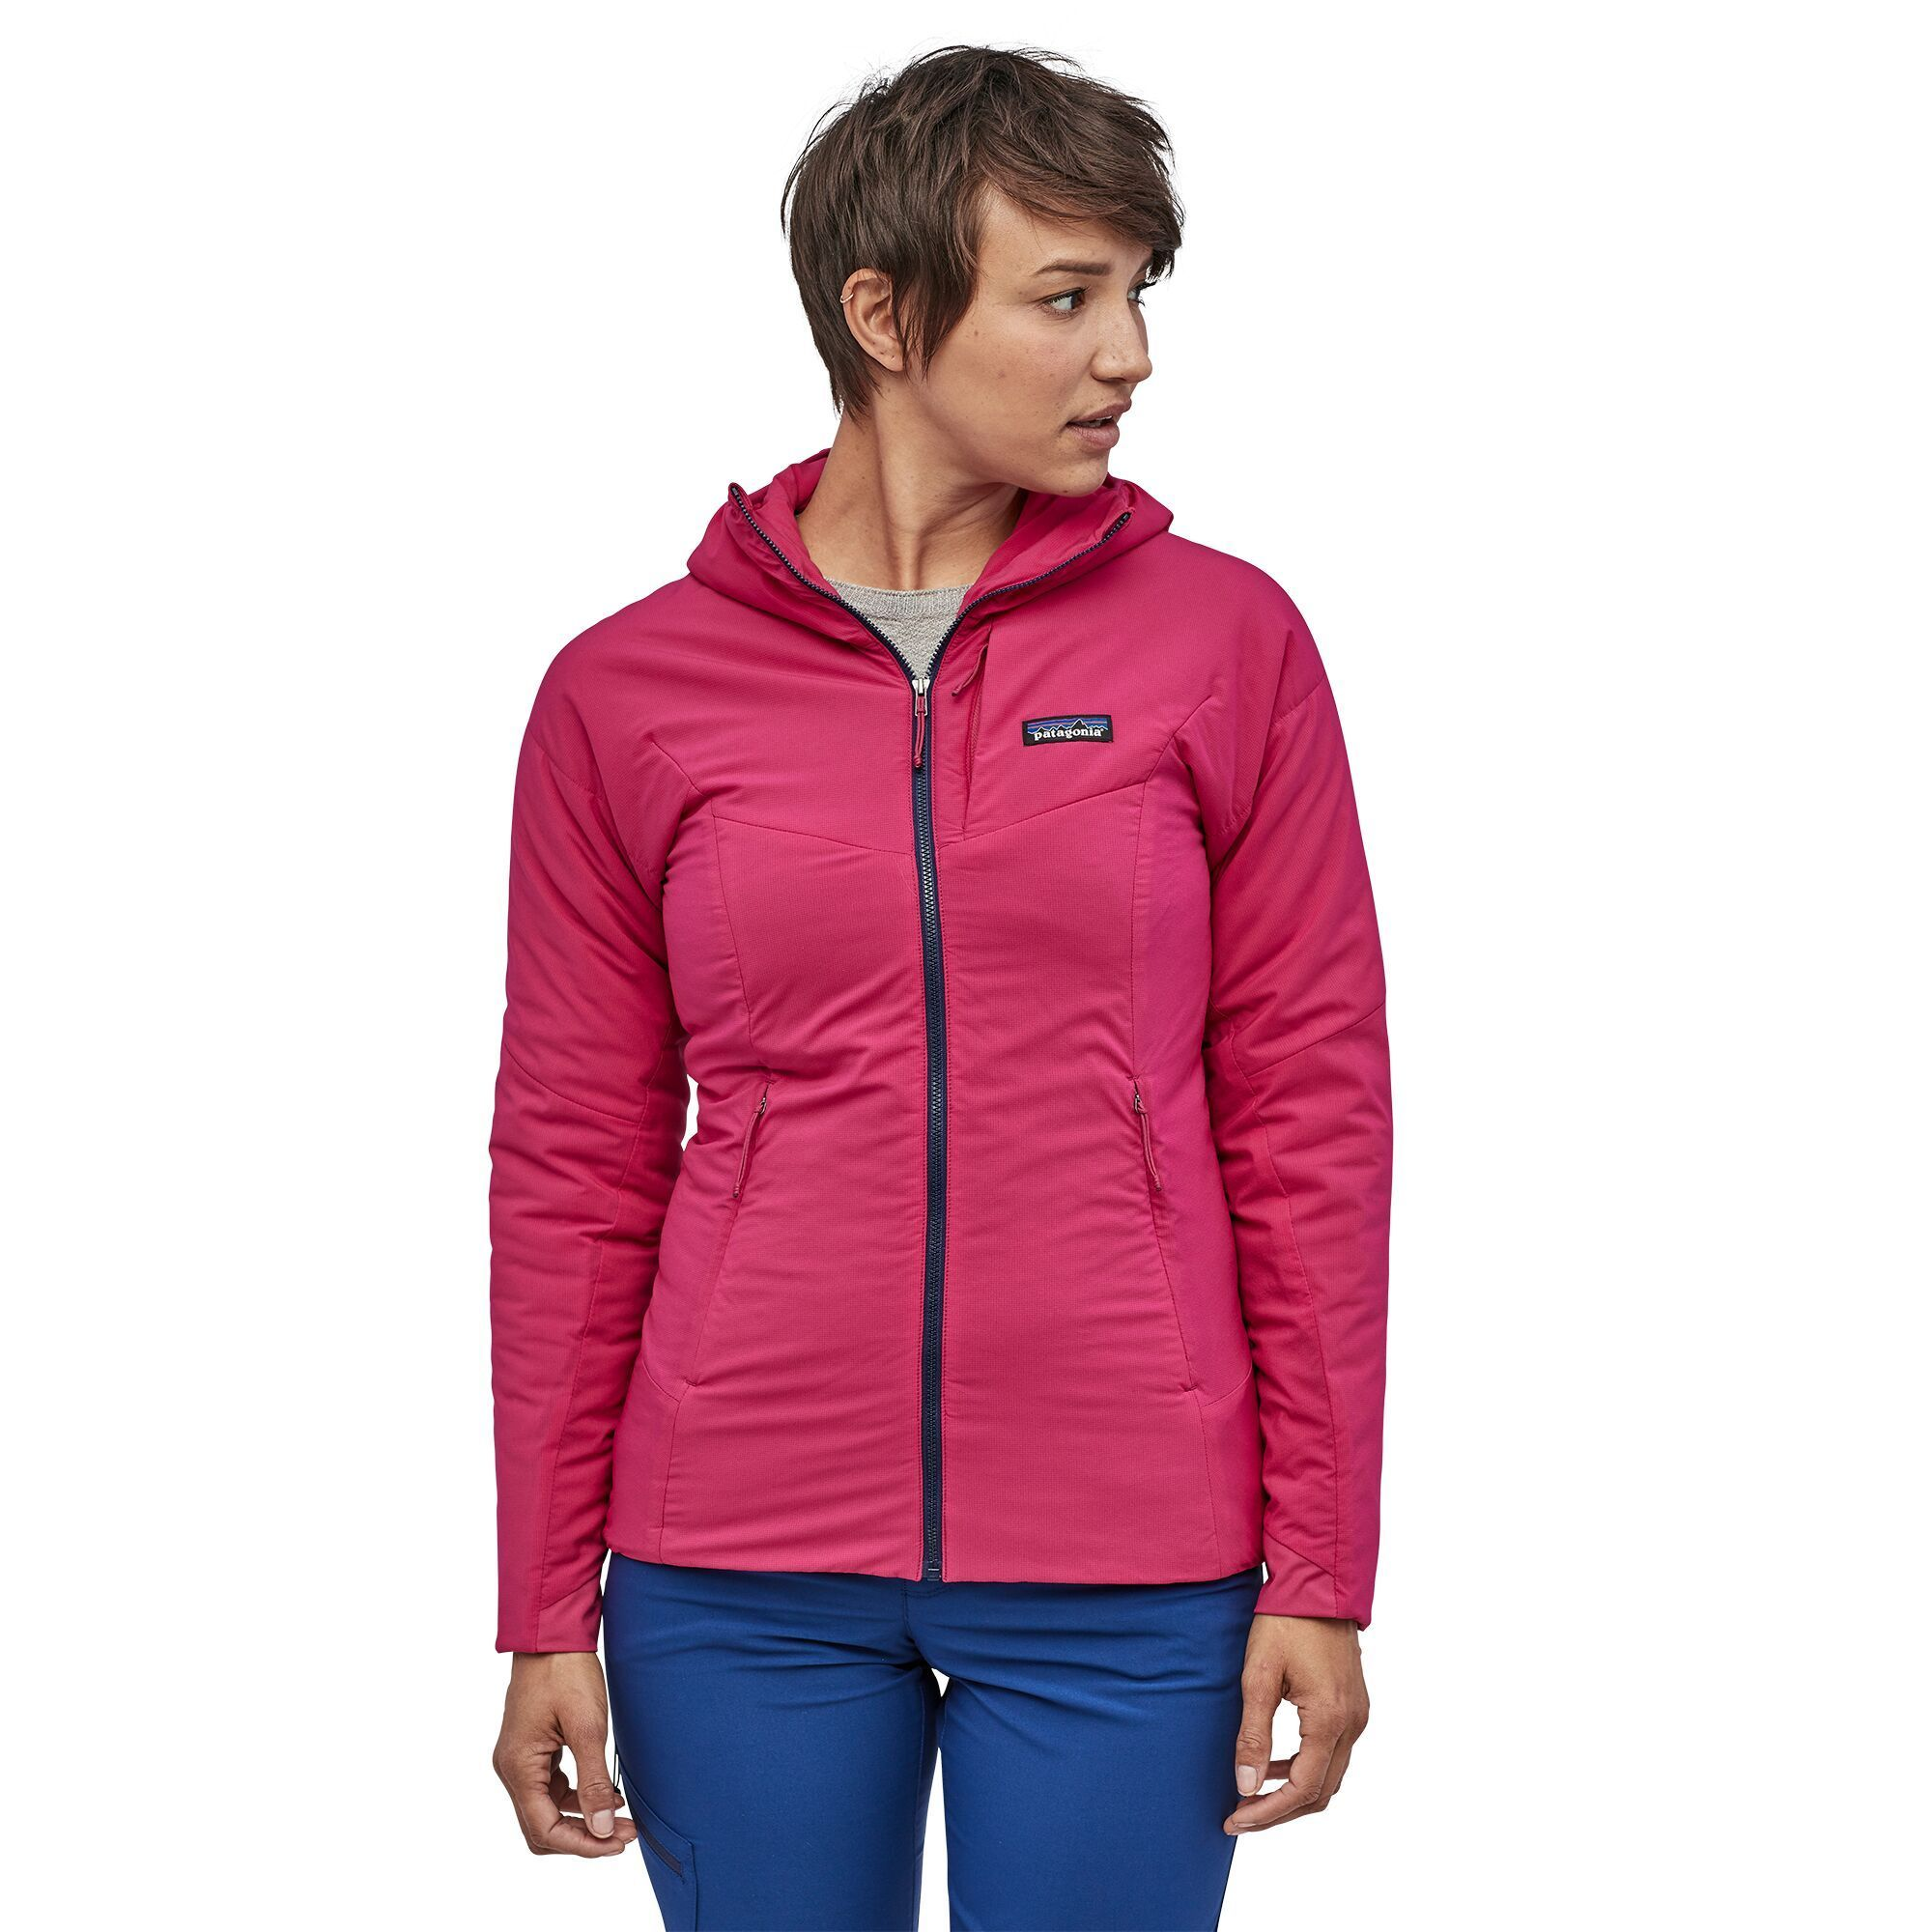 Patagonia - W's Nano-Air® Hoody - Recycled Polyester - Weekendbee - sustainable sportswear